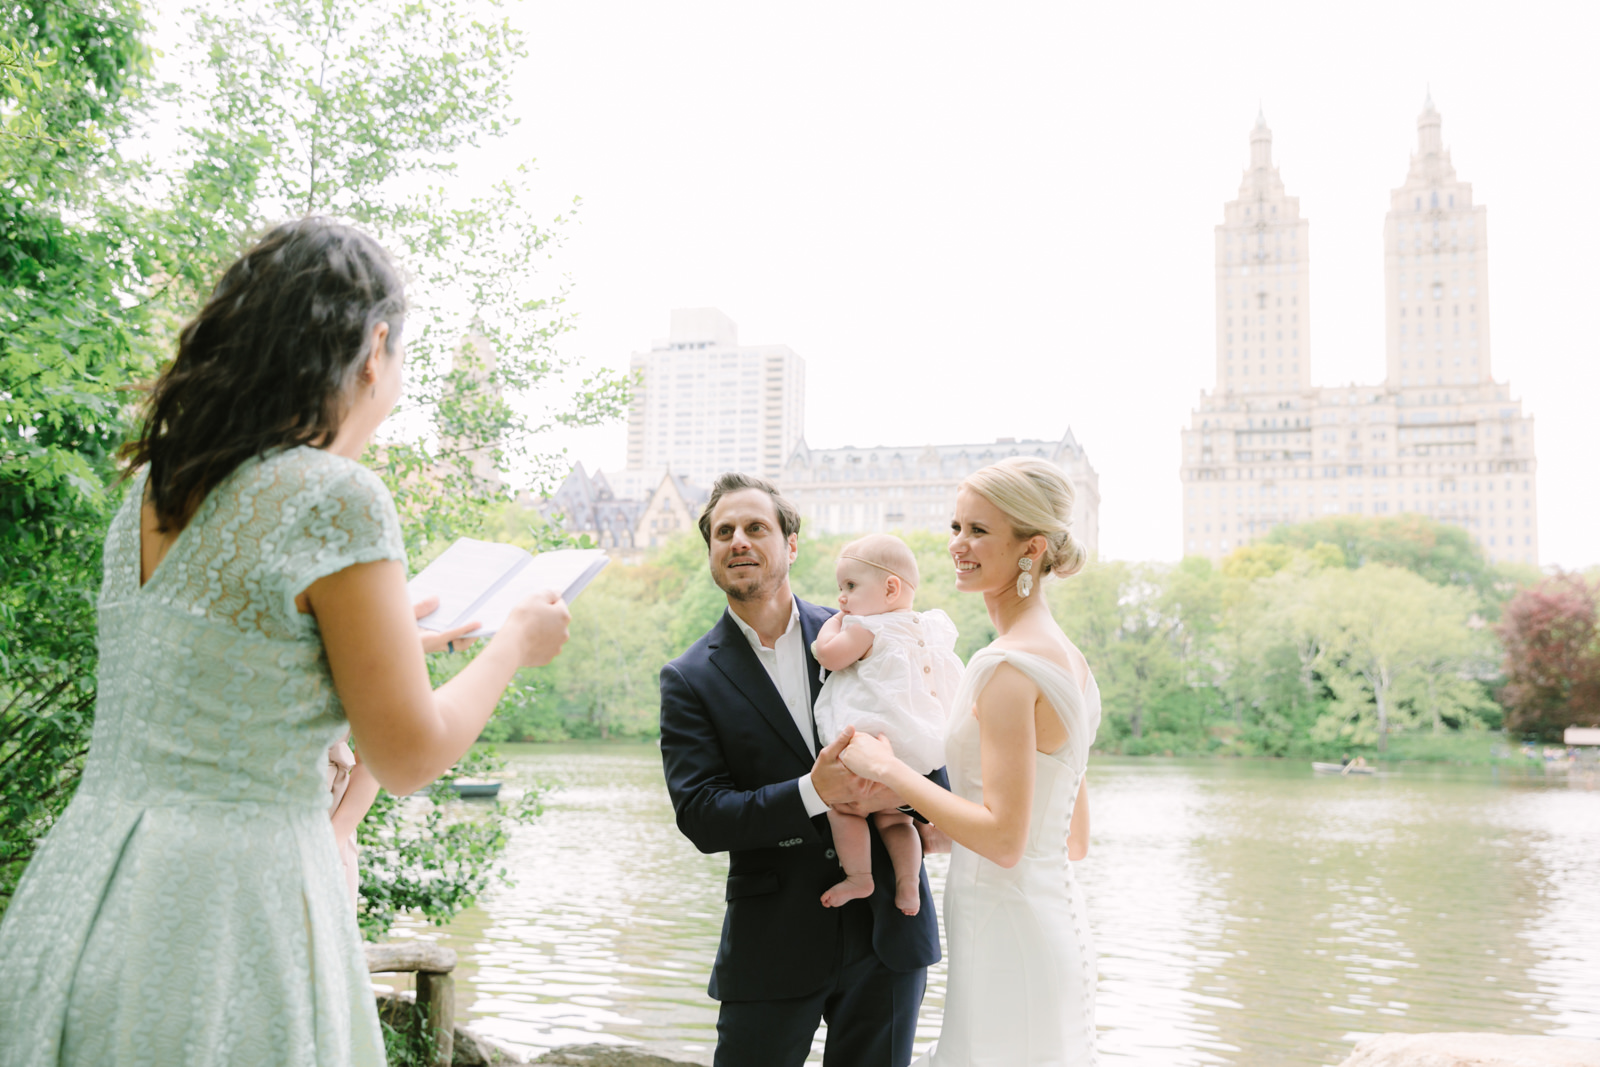 Intimate-NYC_wedding_ by Tanya Isaeva-101.jpg